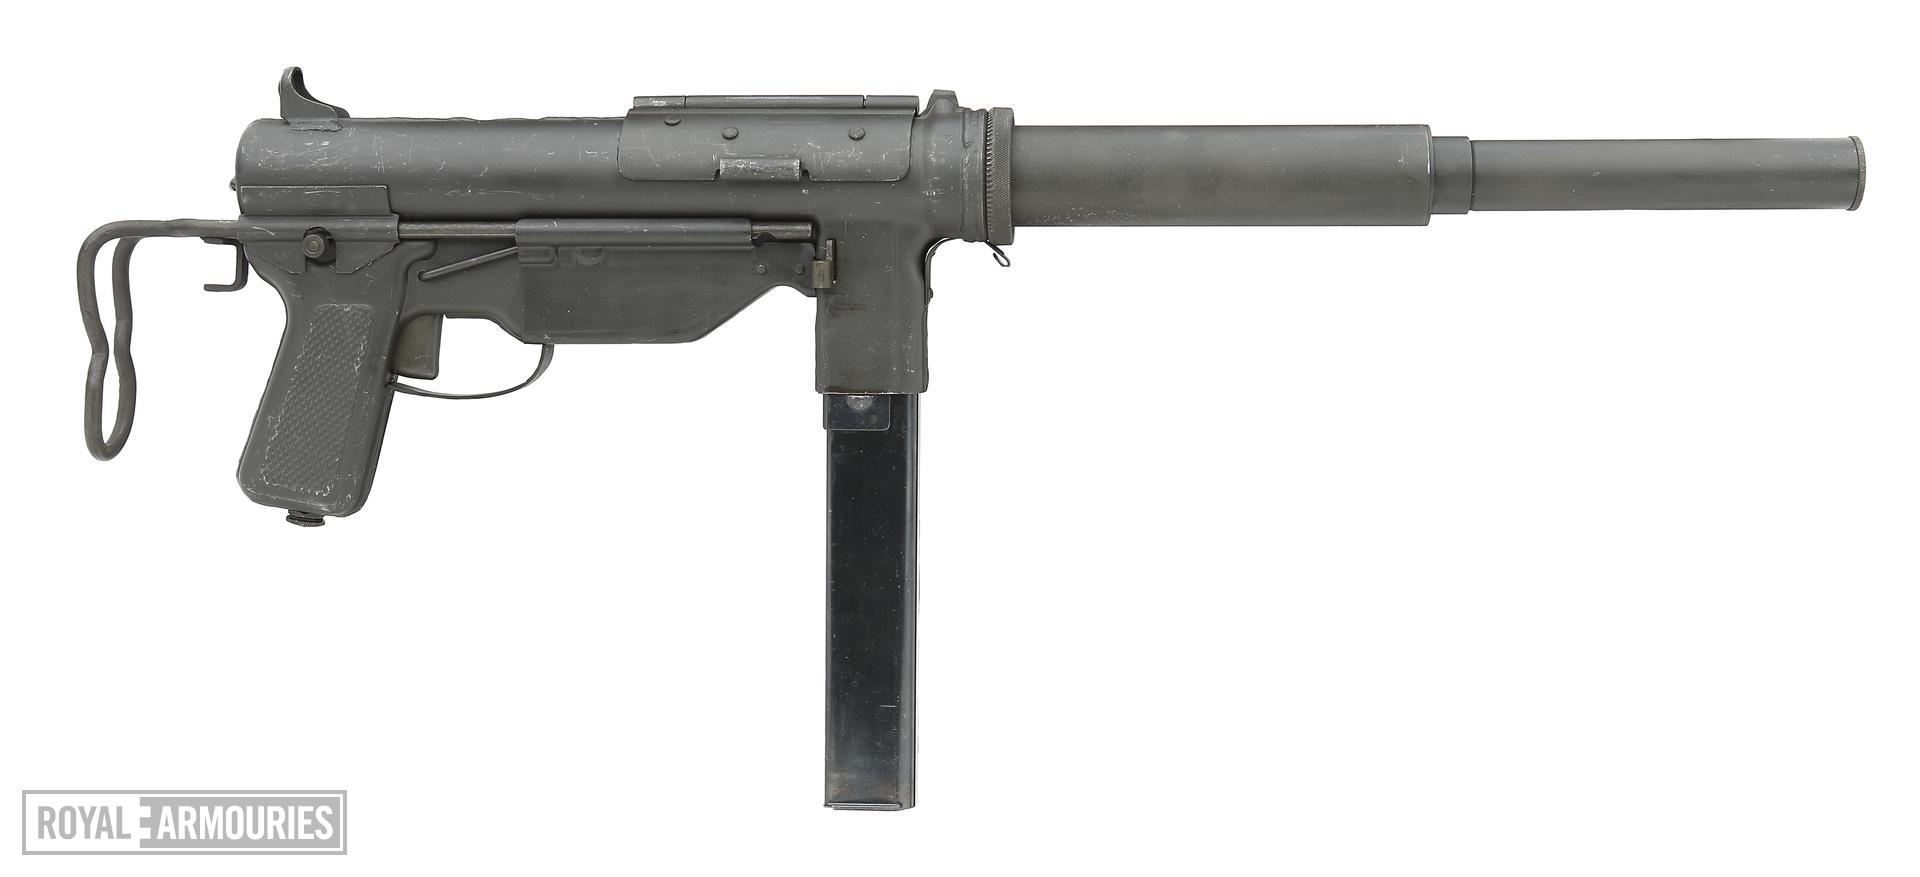 Magazine - Magazine for M3A1 (Suppressed)